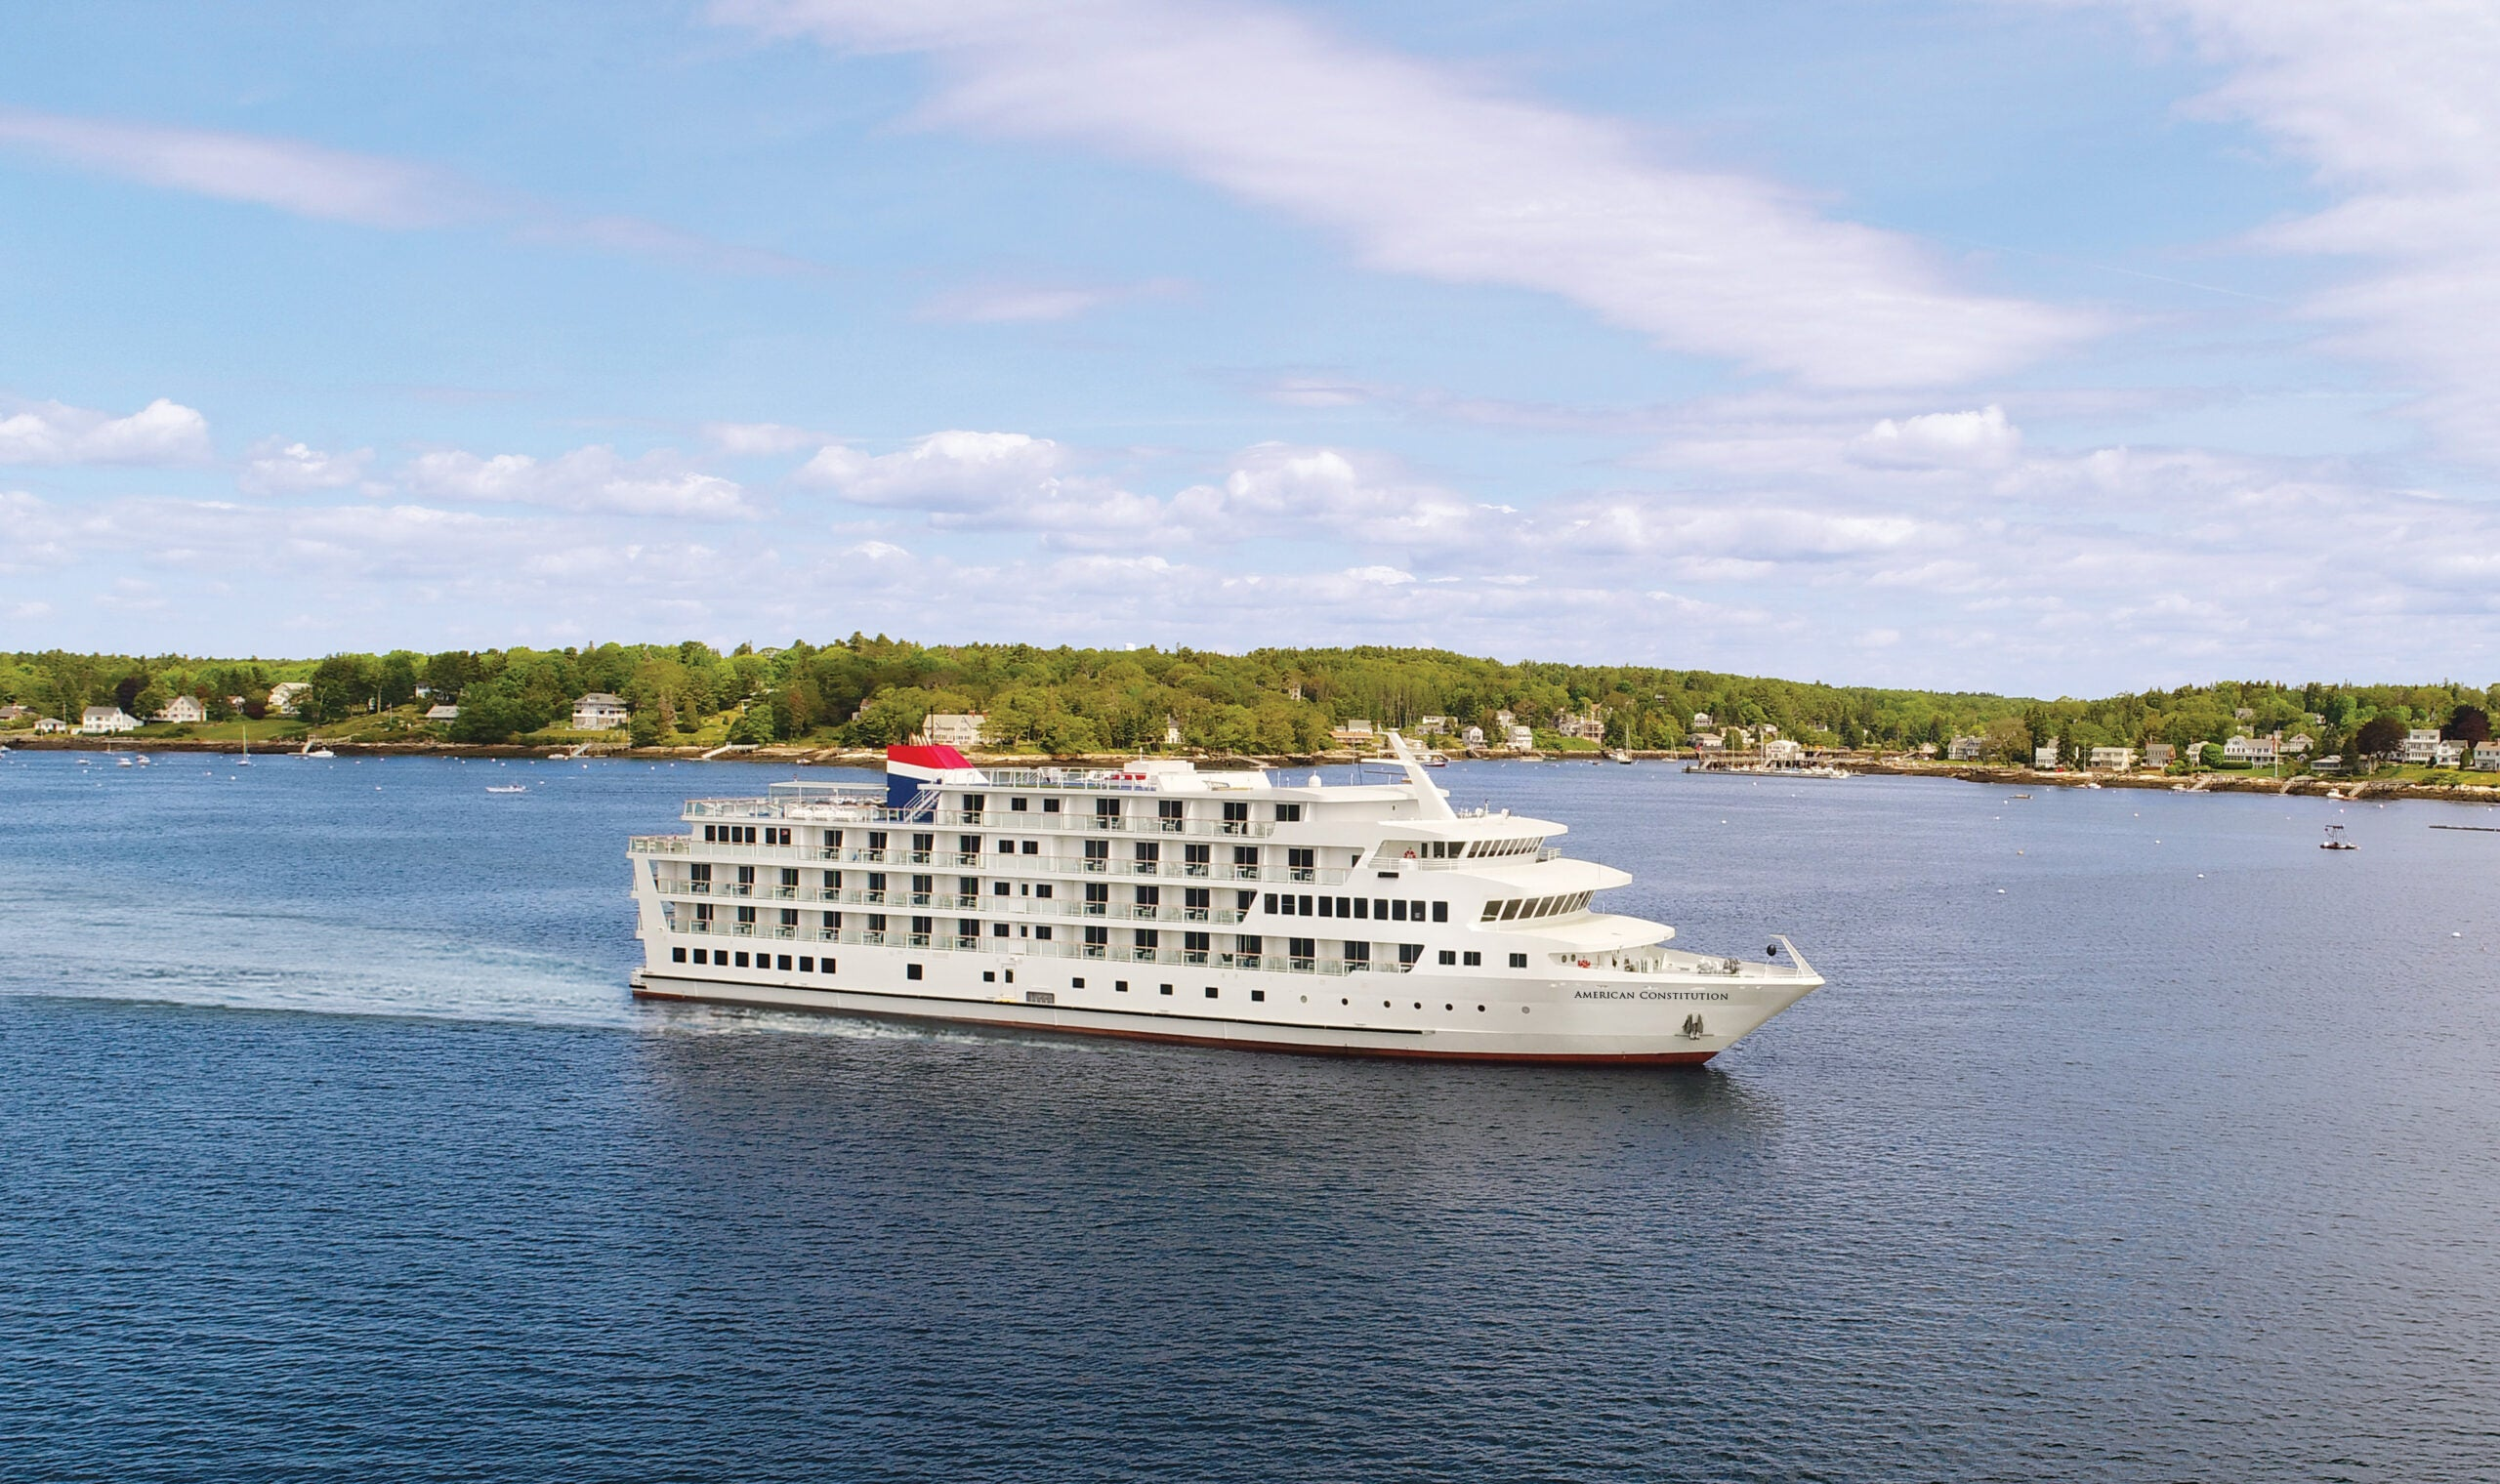 Demand for cruises on small ships jumps in wake of COVID outbreak